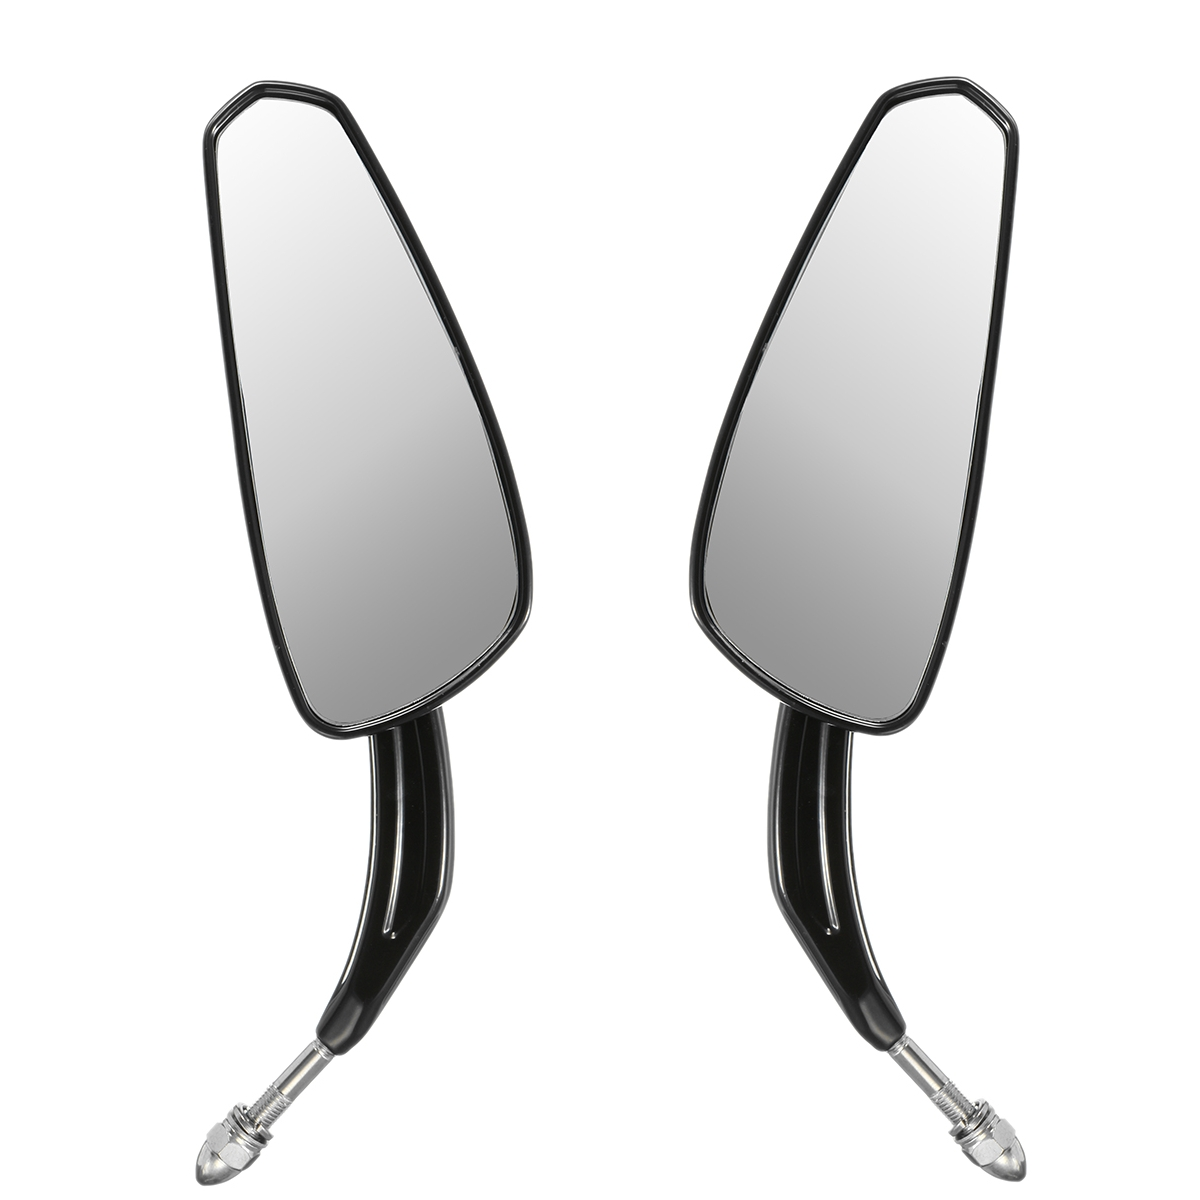 Motorcycle Review Mirrors Black Rear Blade For Harley Sportster Softail Road King Glide